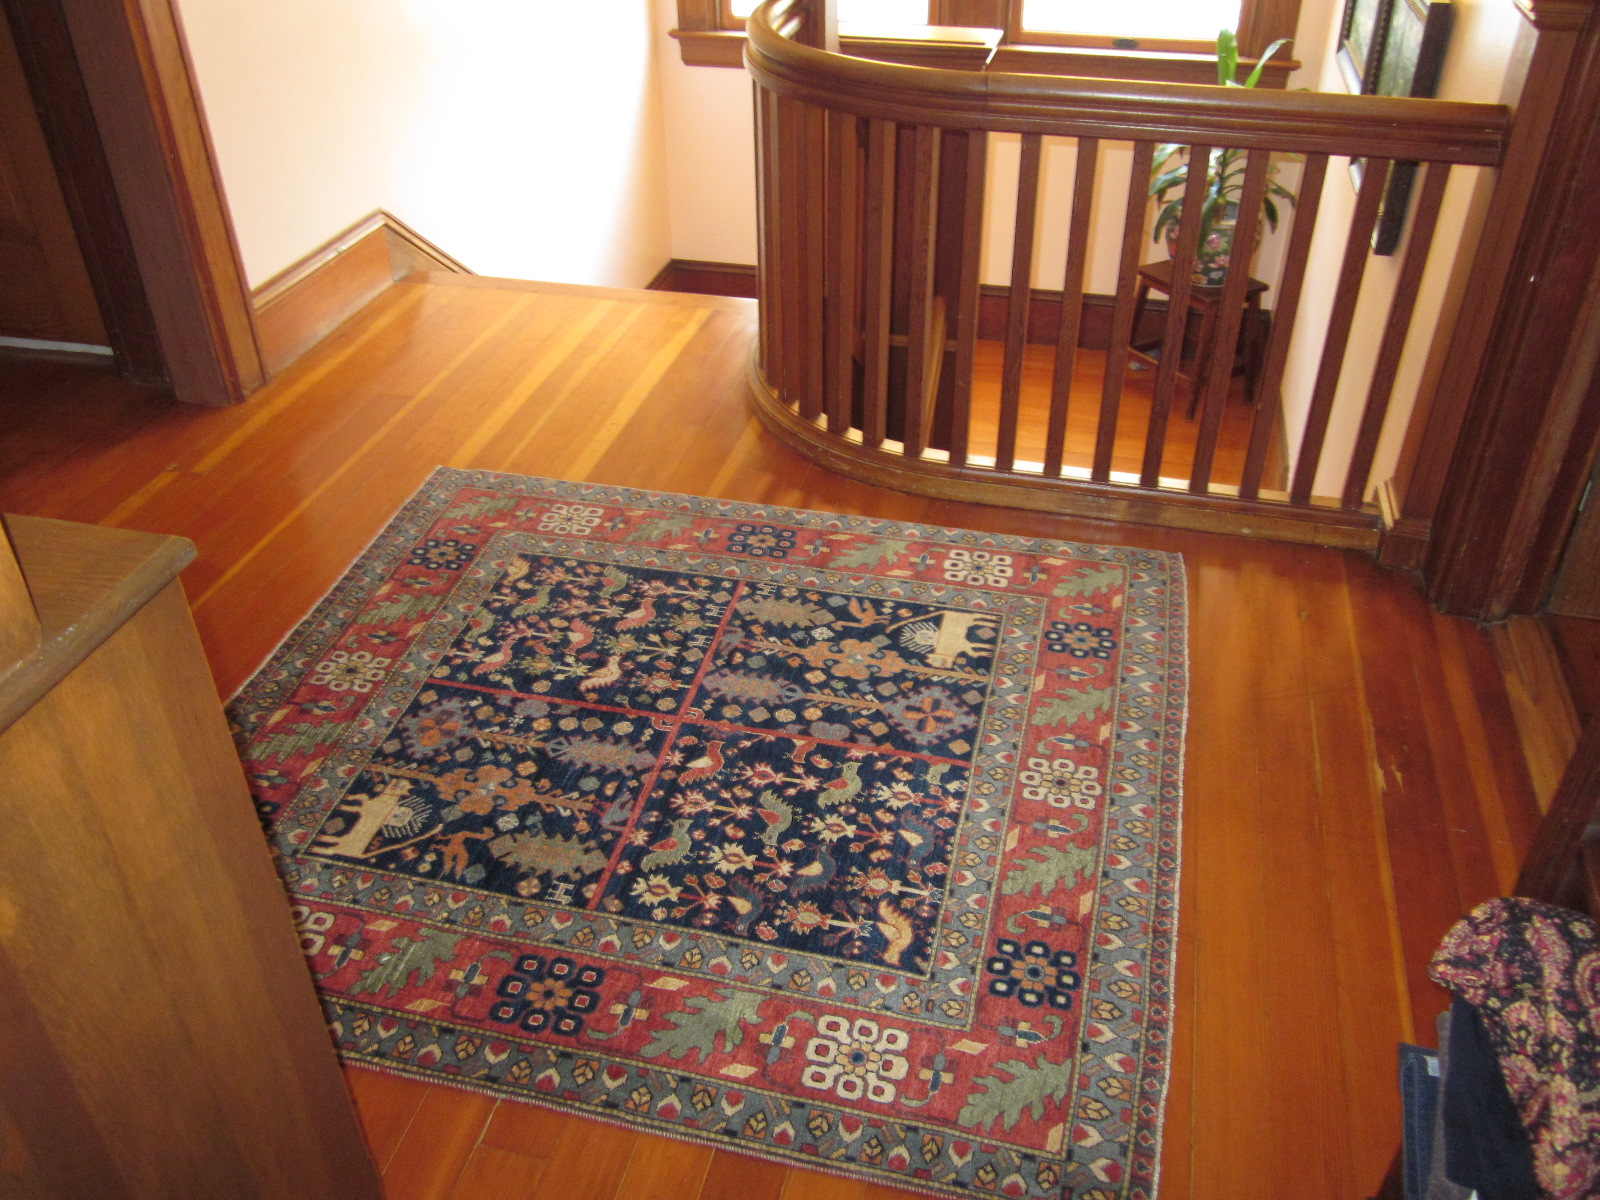 Small Qashqai rug in client's home.